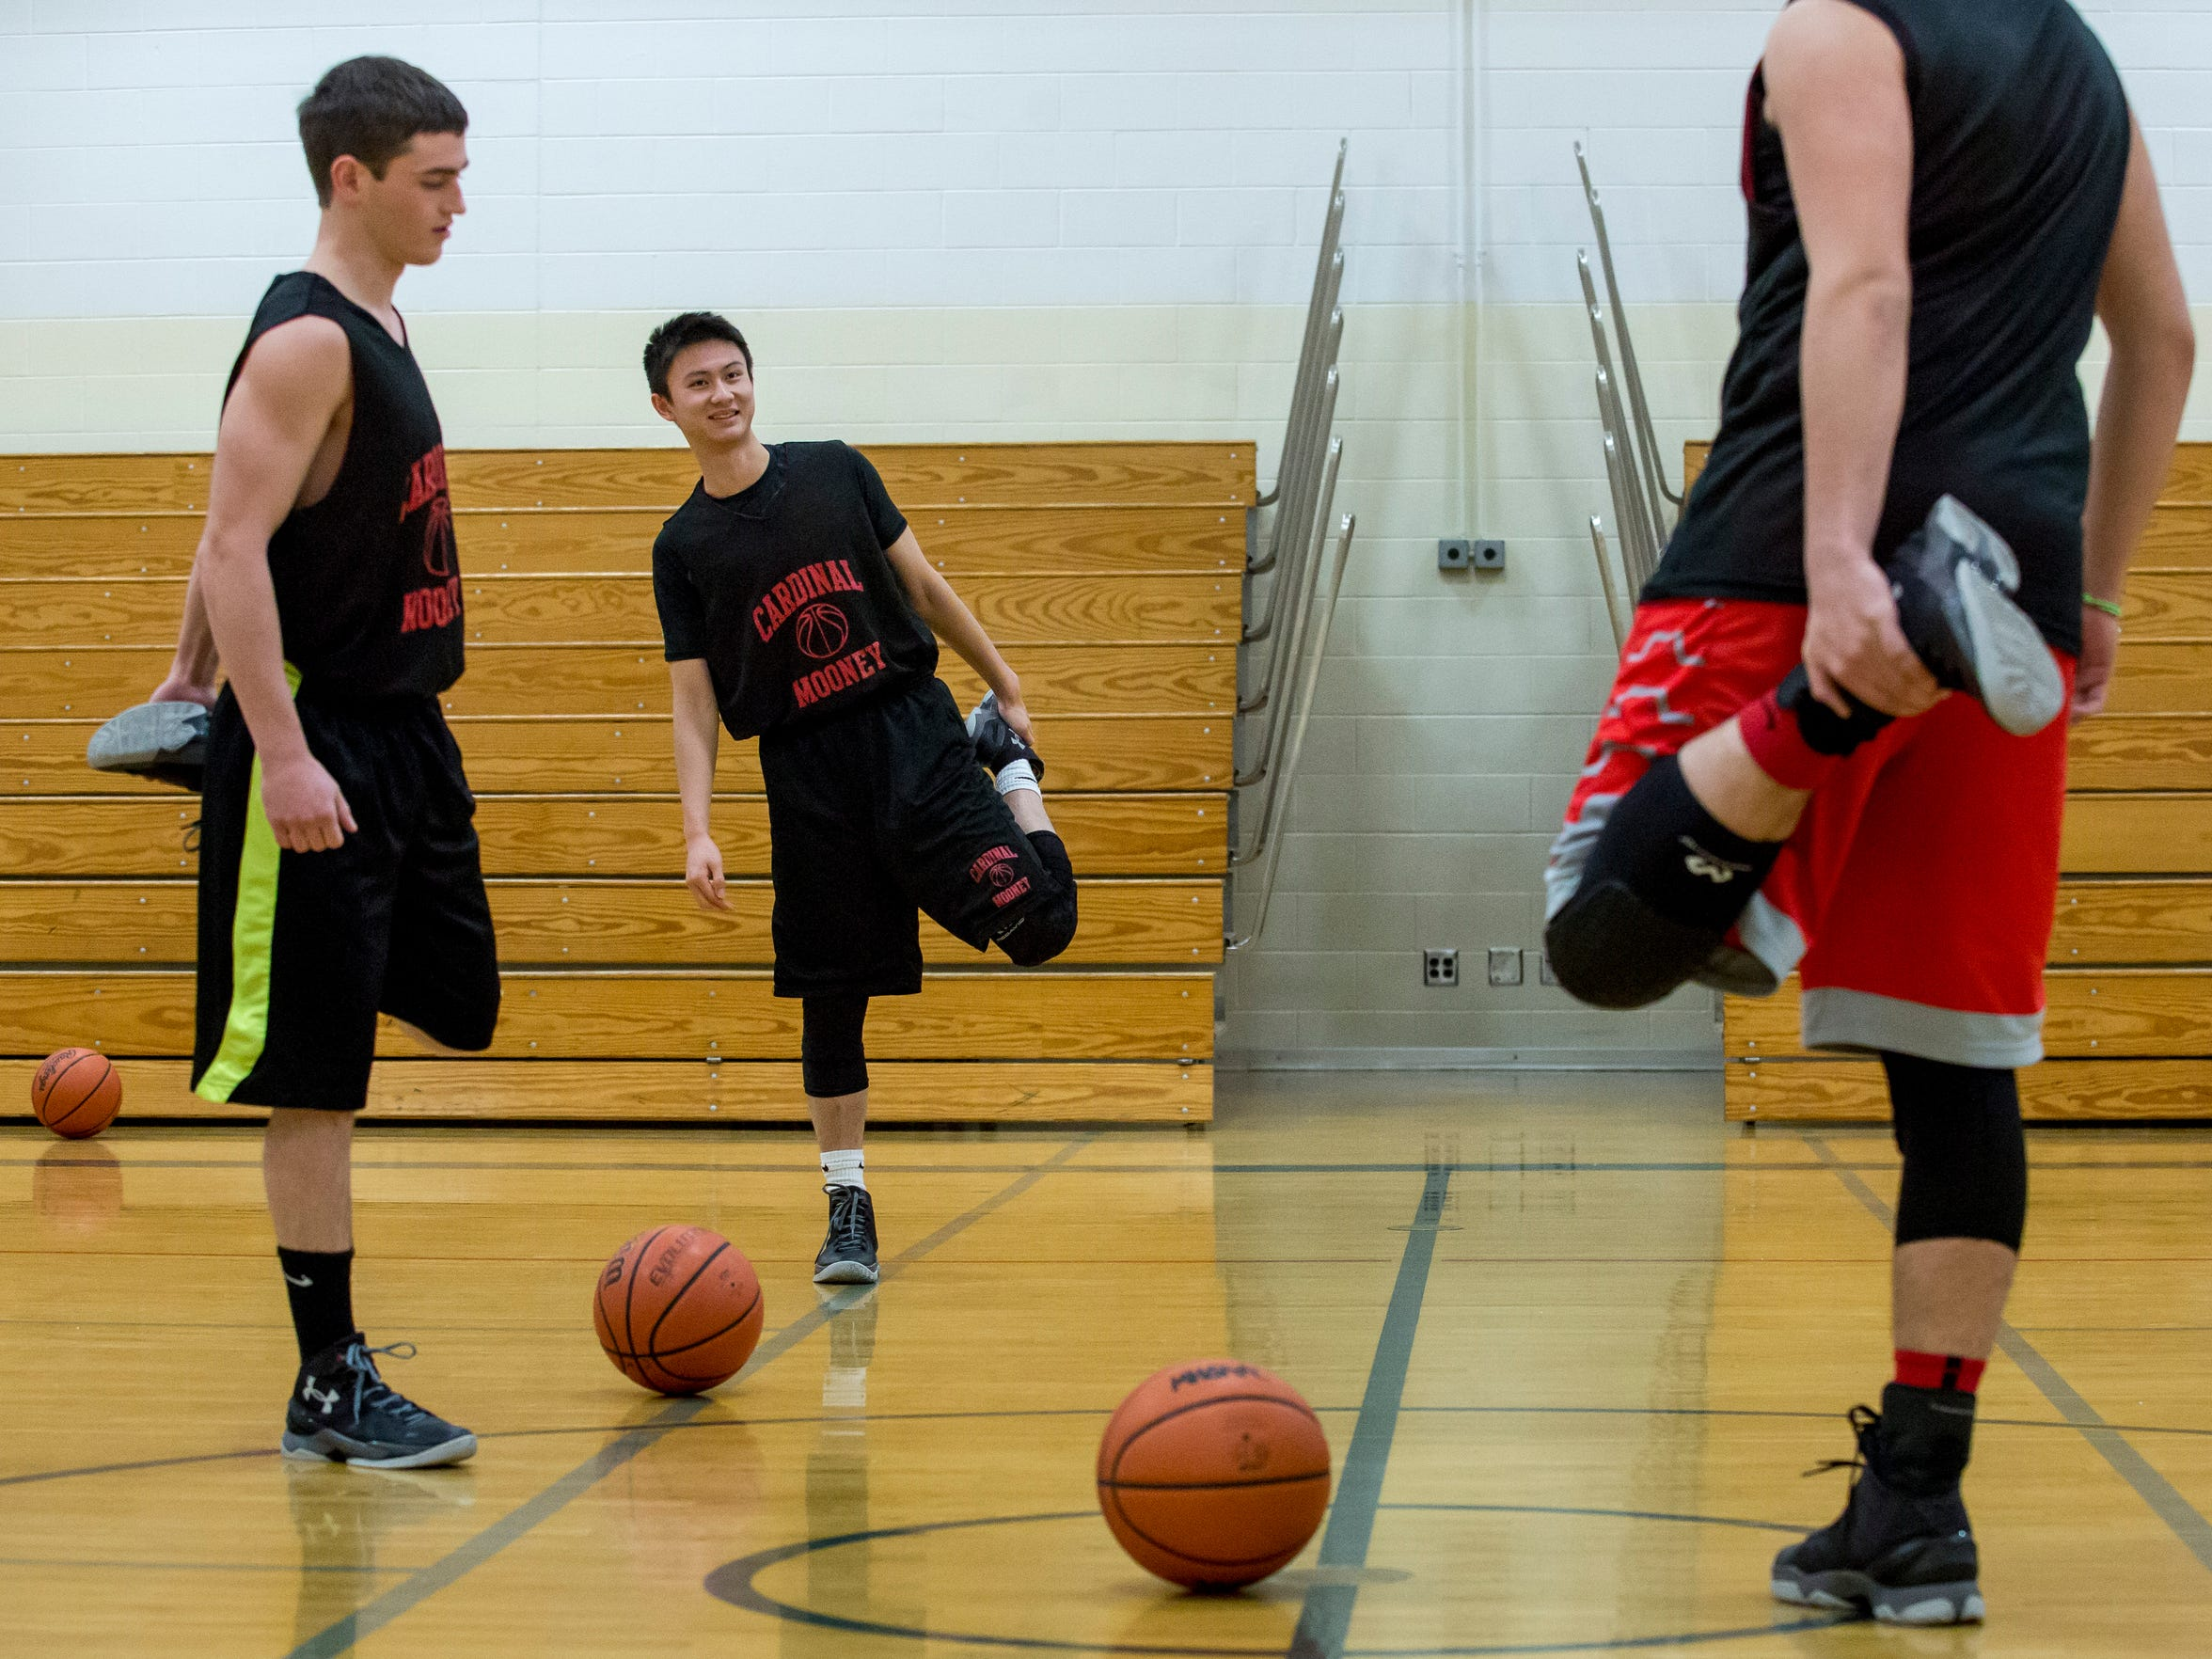 Senior Chris Xuan, 19, stretches with other members of the basketball team during practice Wednesday, Jan. 27, 2016 at Cardinal Mooney High School in Marine City. Xuan is an exchange student from Shenzhen, China.